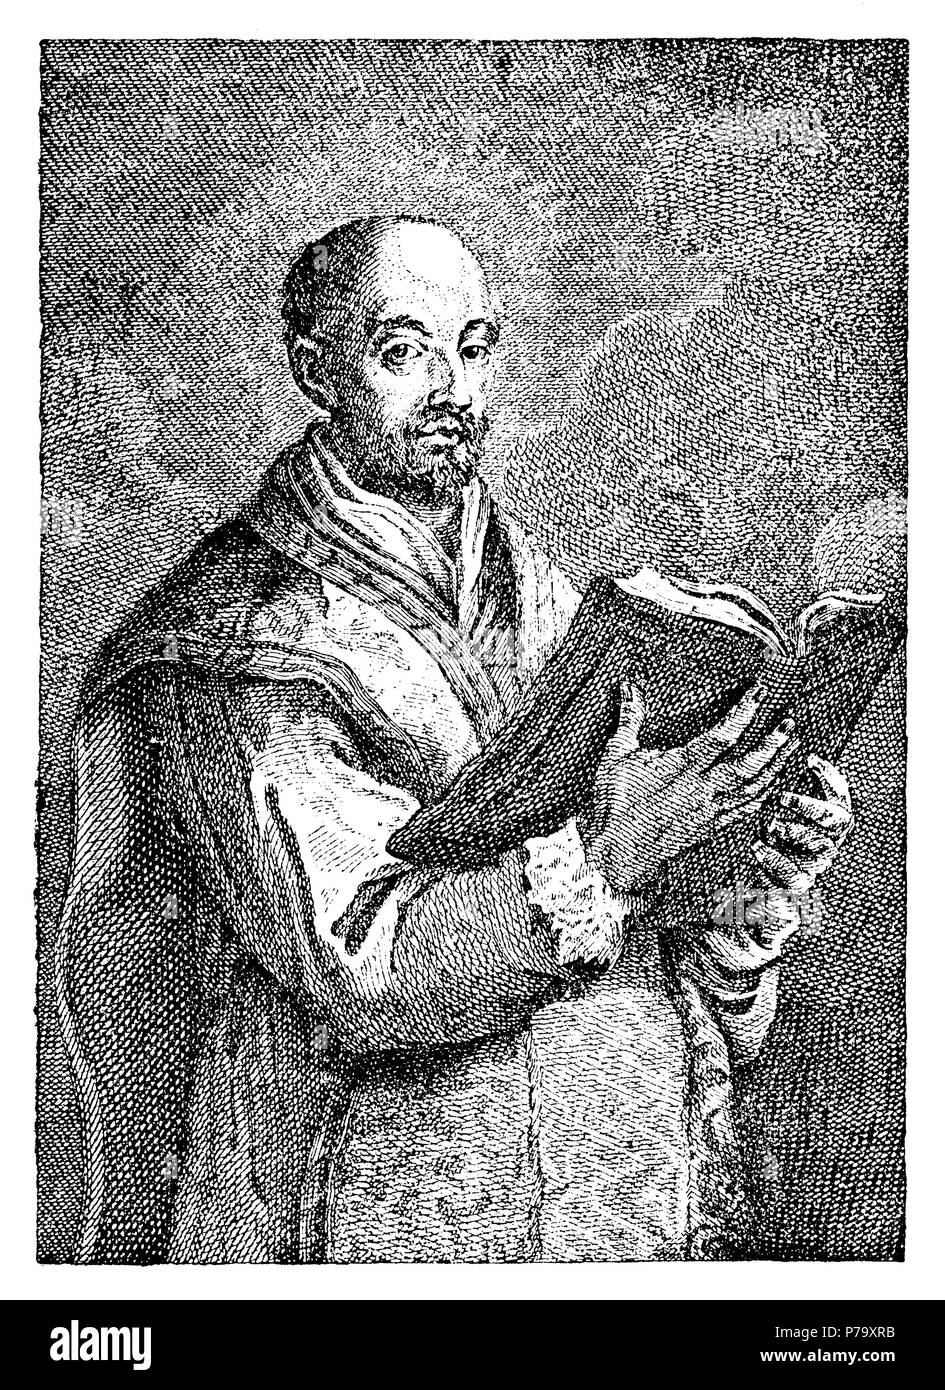 Loyola, Ignatius von (1491-1556), most important co-founder and designer of the Society of Jesus, later also called Jesuit Order., Canonised in 1622,   1881 - Stock Image